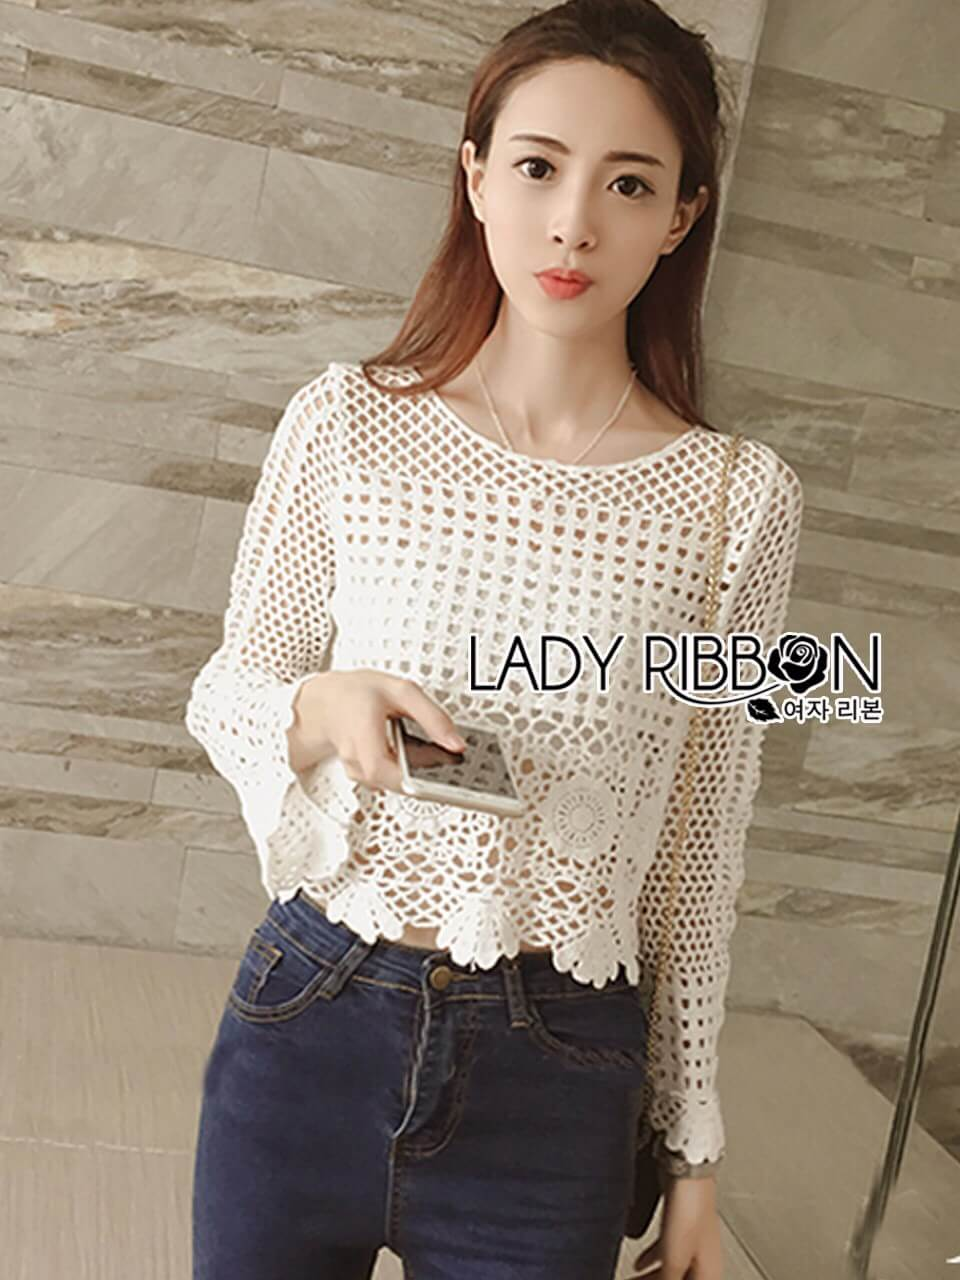 &#x1F380 Lady Ribbon's Made &#x1F380 Lady Catherine Everyday Basic Vintage Crochet Blouse